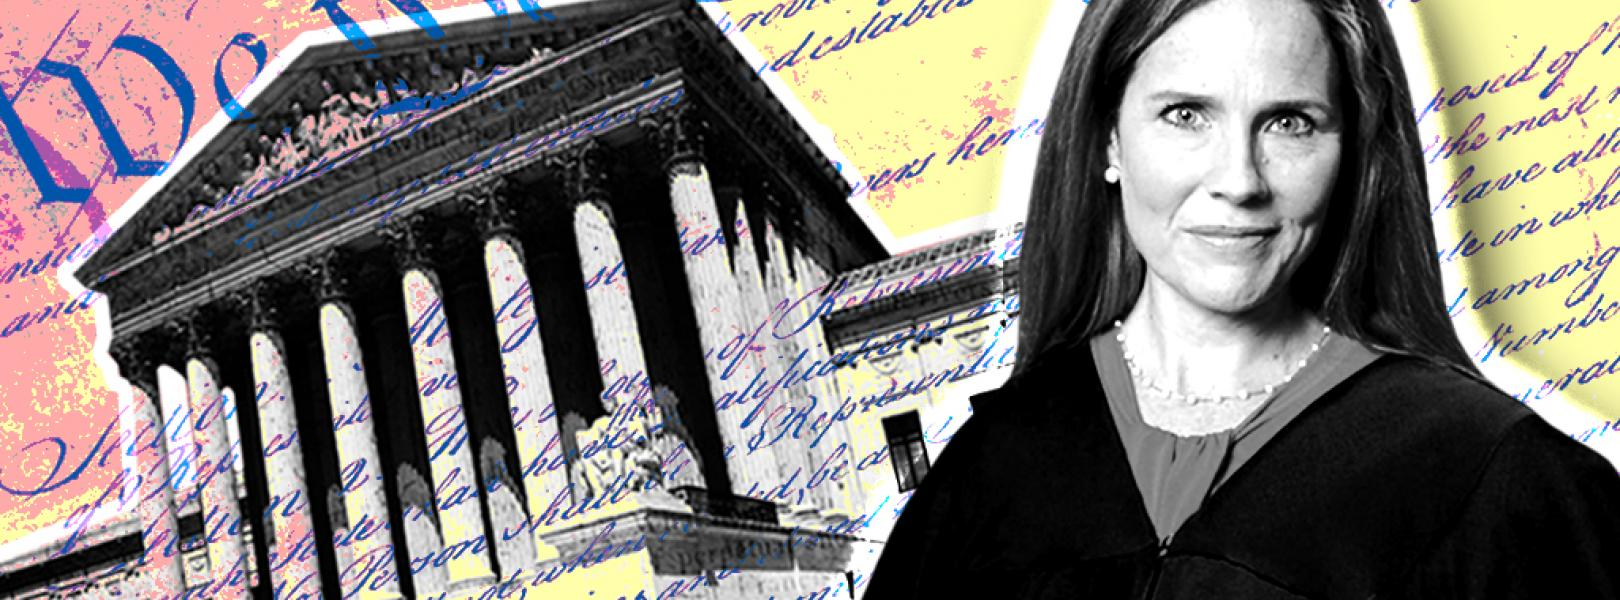 image of Amy Coney Barrett next to the Supreme Court